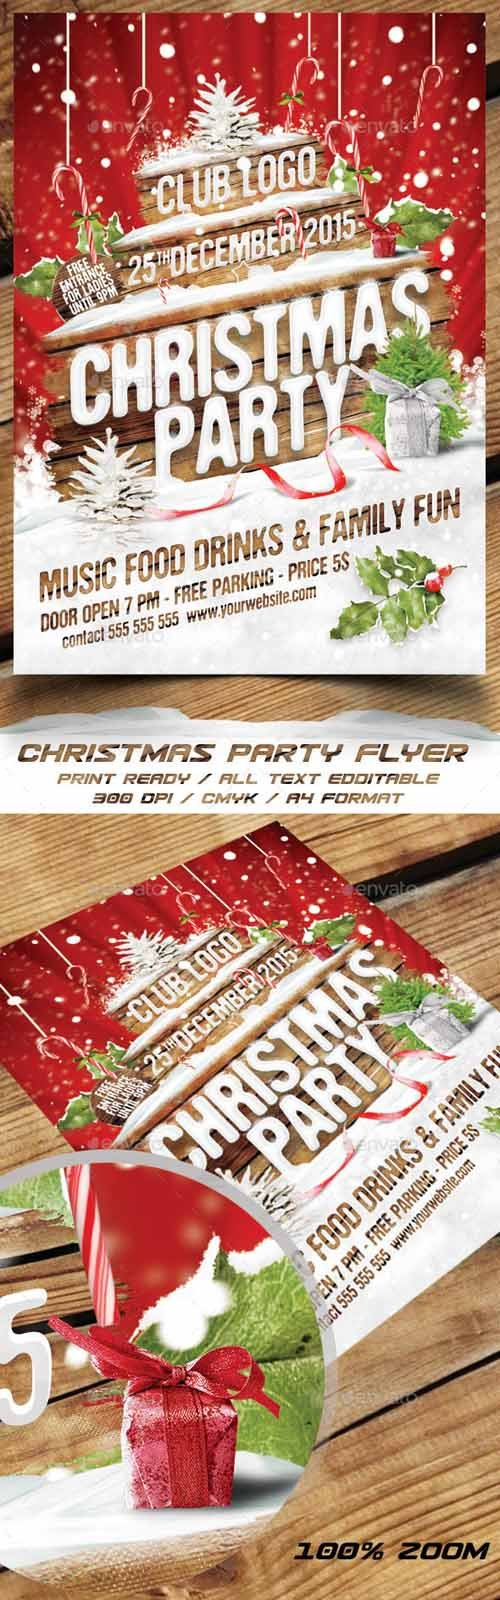 christmas party flyer 13853857 nitrogfx unique christmas party flyer 13853857